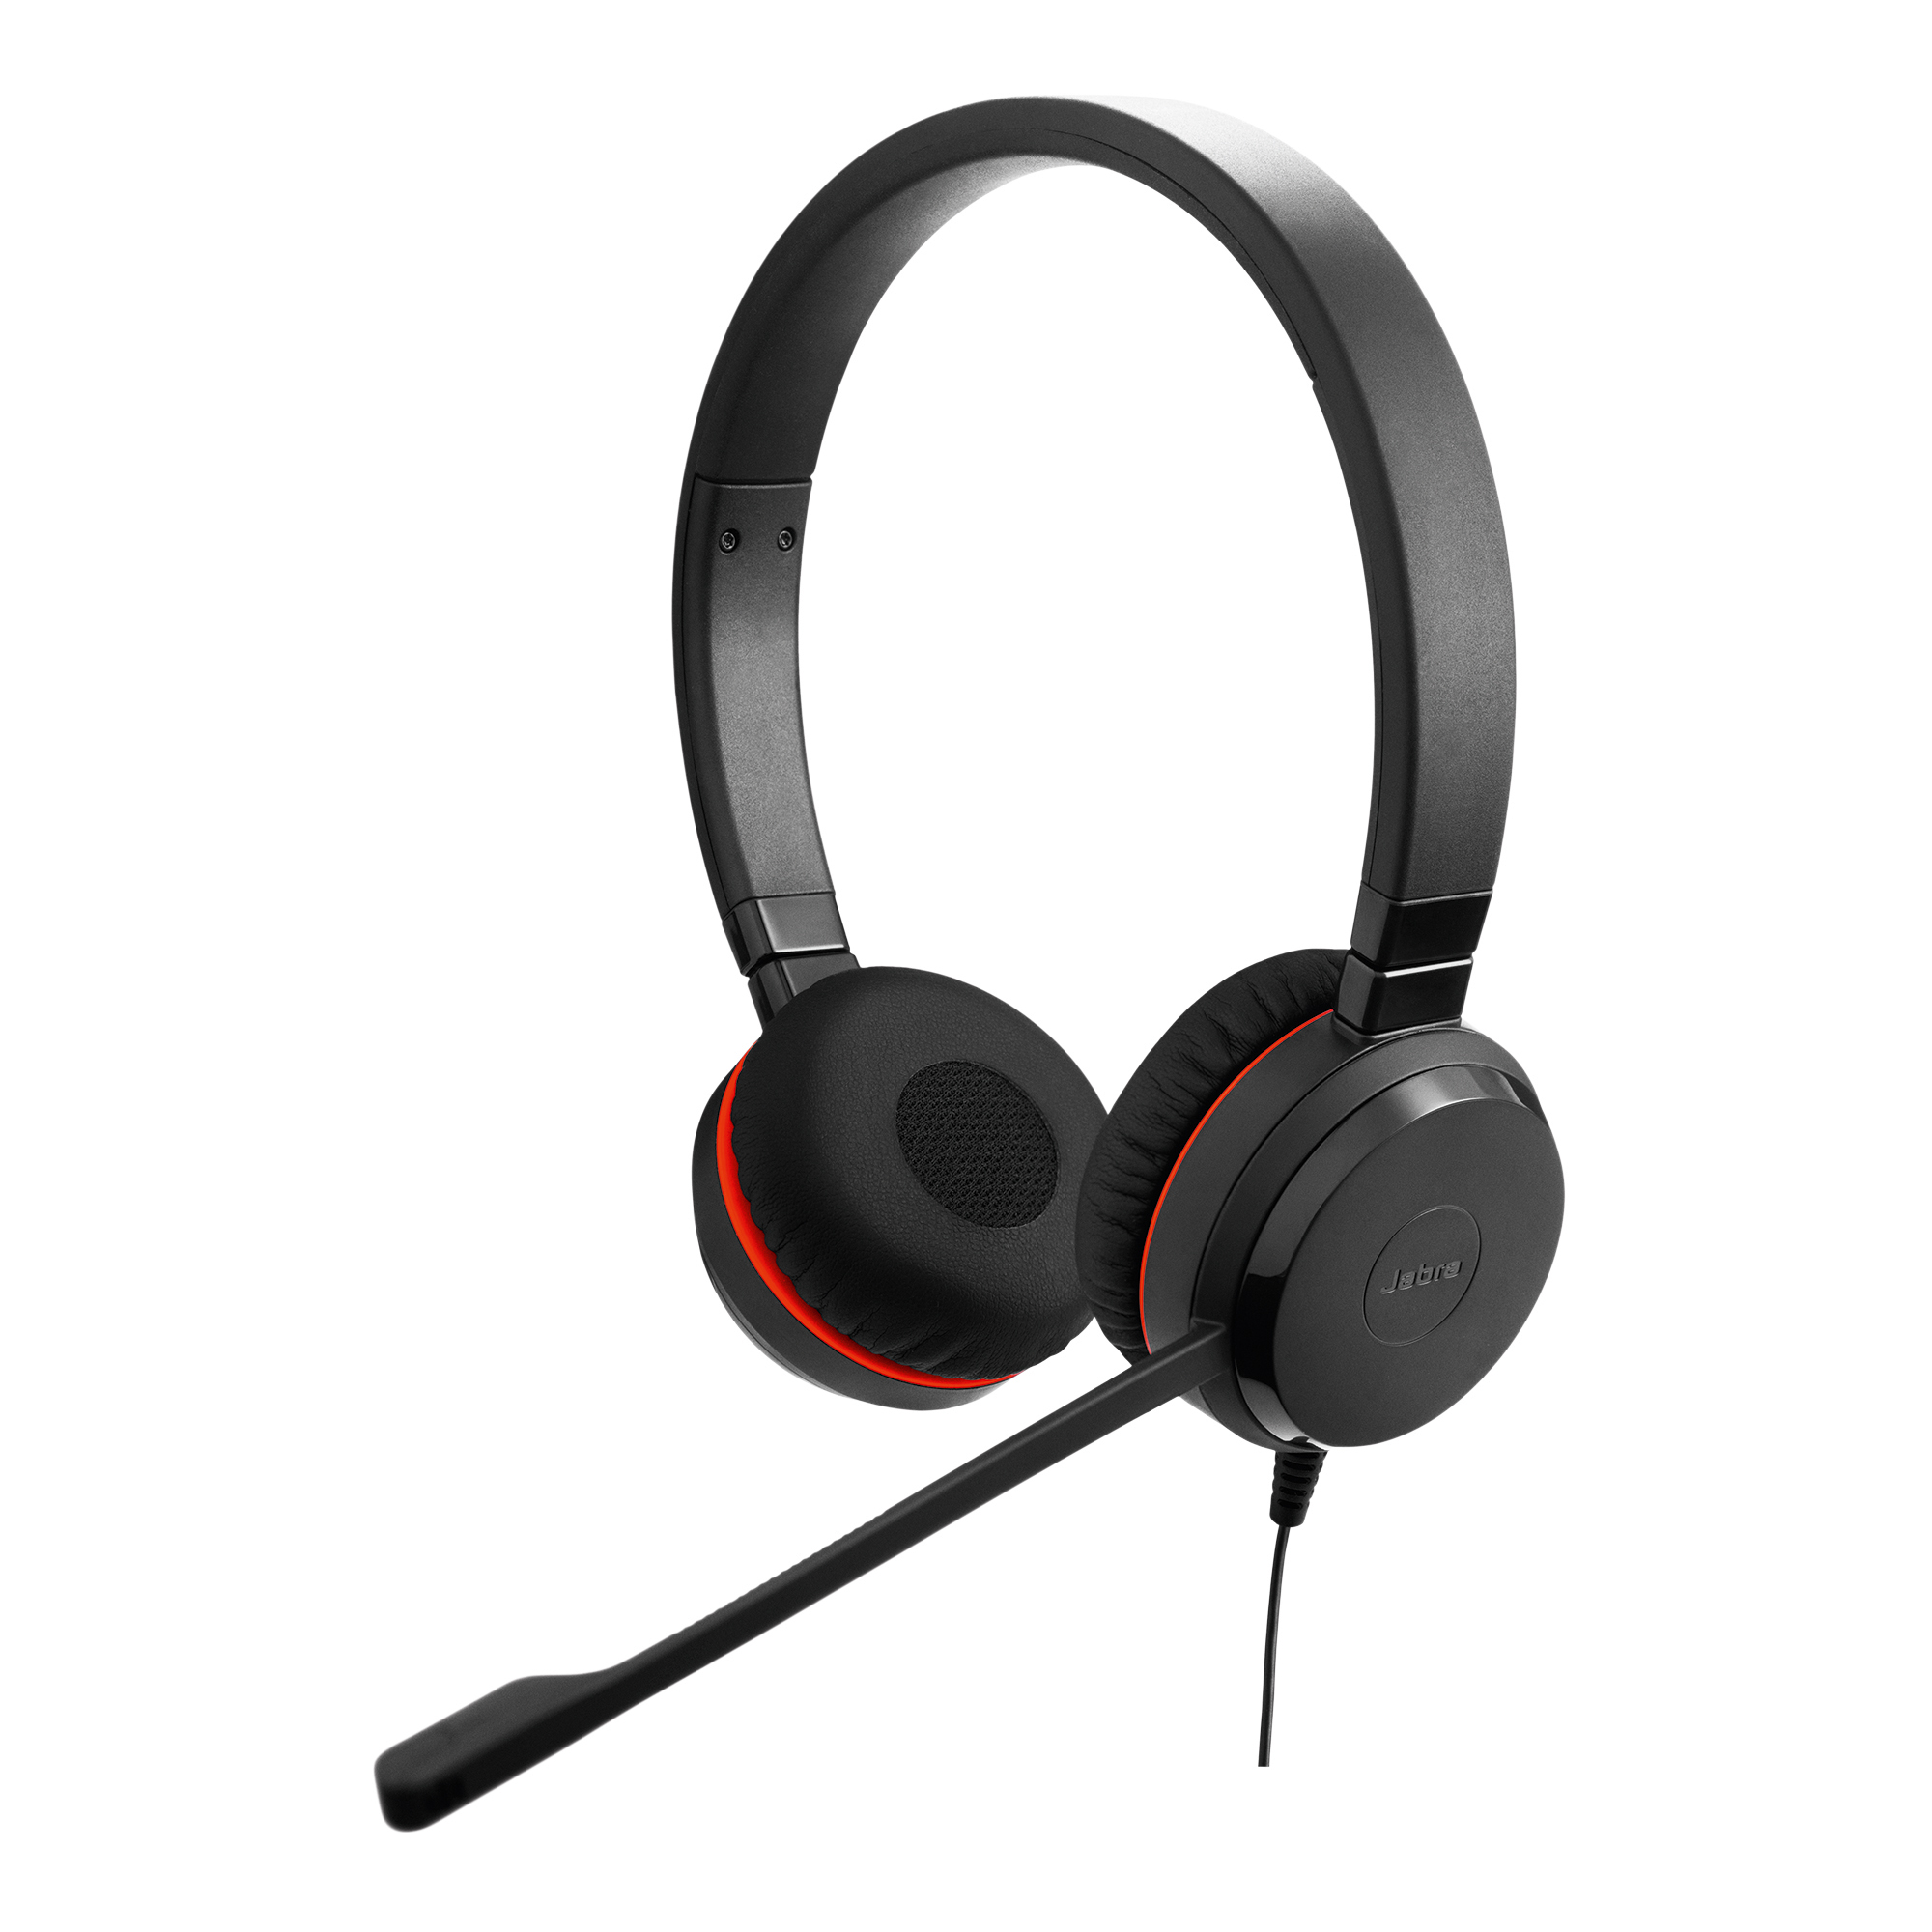 Jabra EVOLVE 30 II Duo USB Headset With Noise Cancelling Microphone Ref 5399-823-309